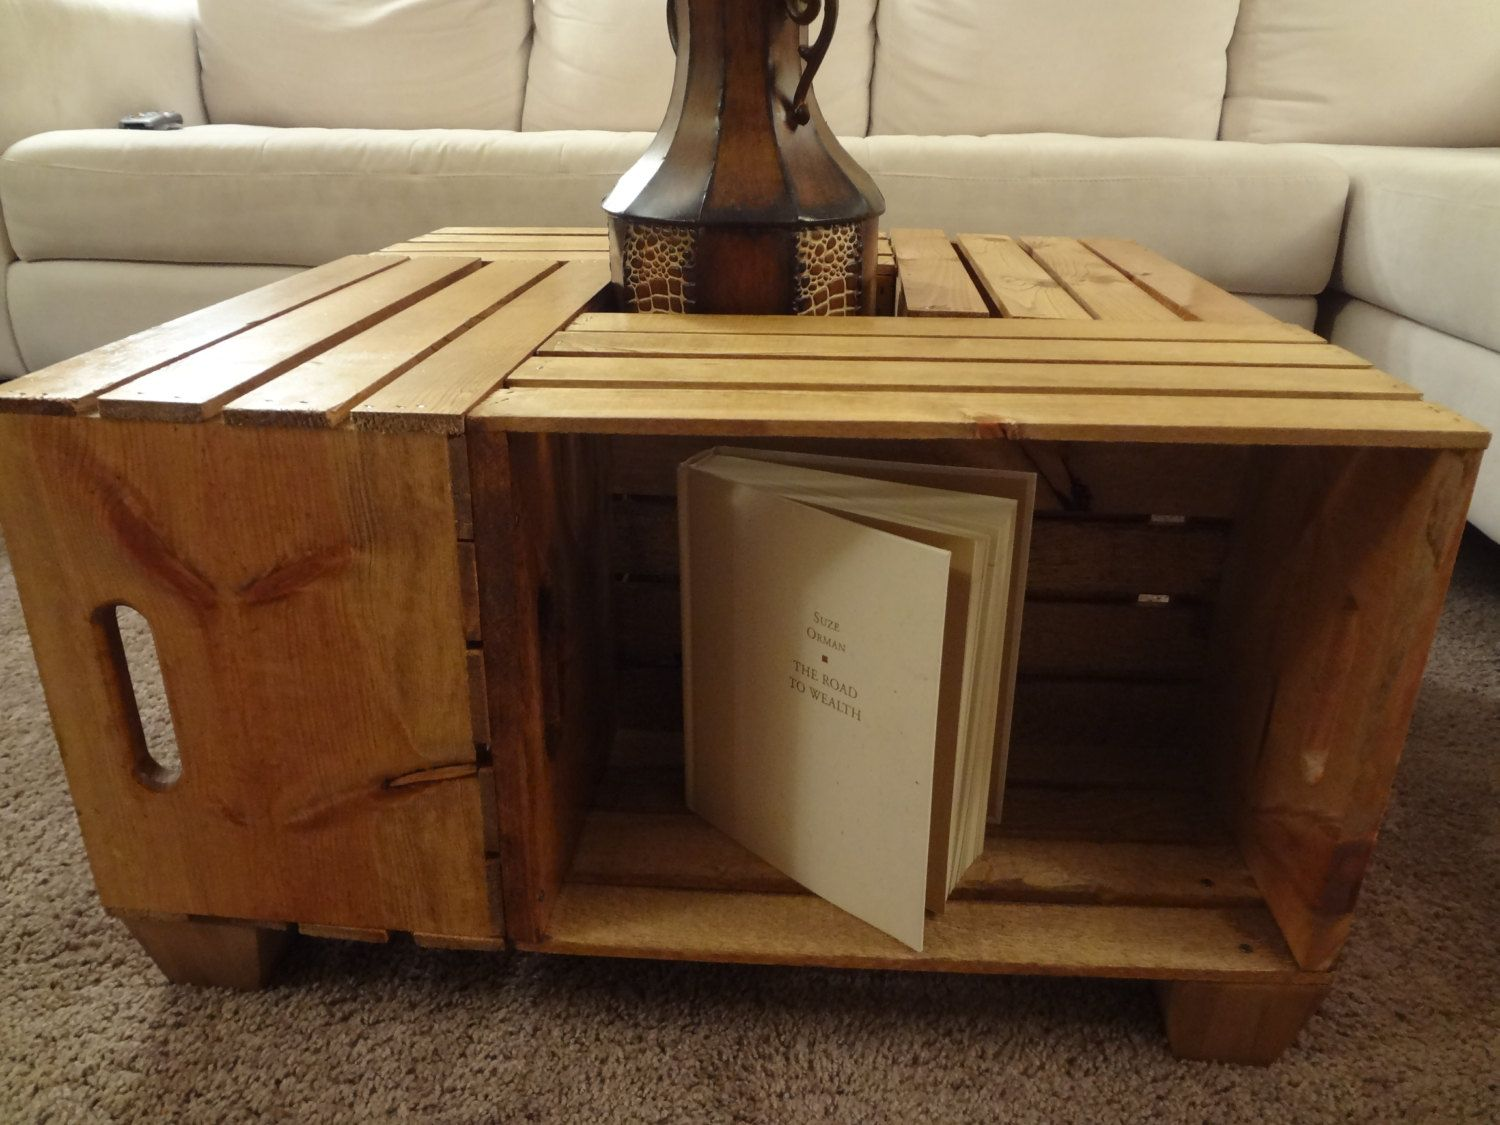 Ideas for upcycling the french wine boxes into coffee table for ideas for upcycling the french wine boxes into coffee table for conservatory geotapseo Image collections